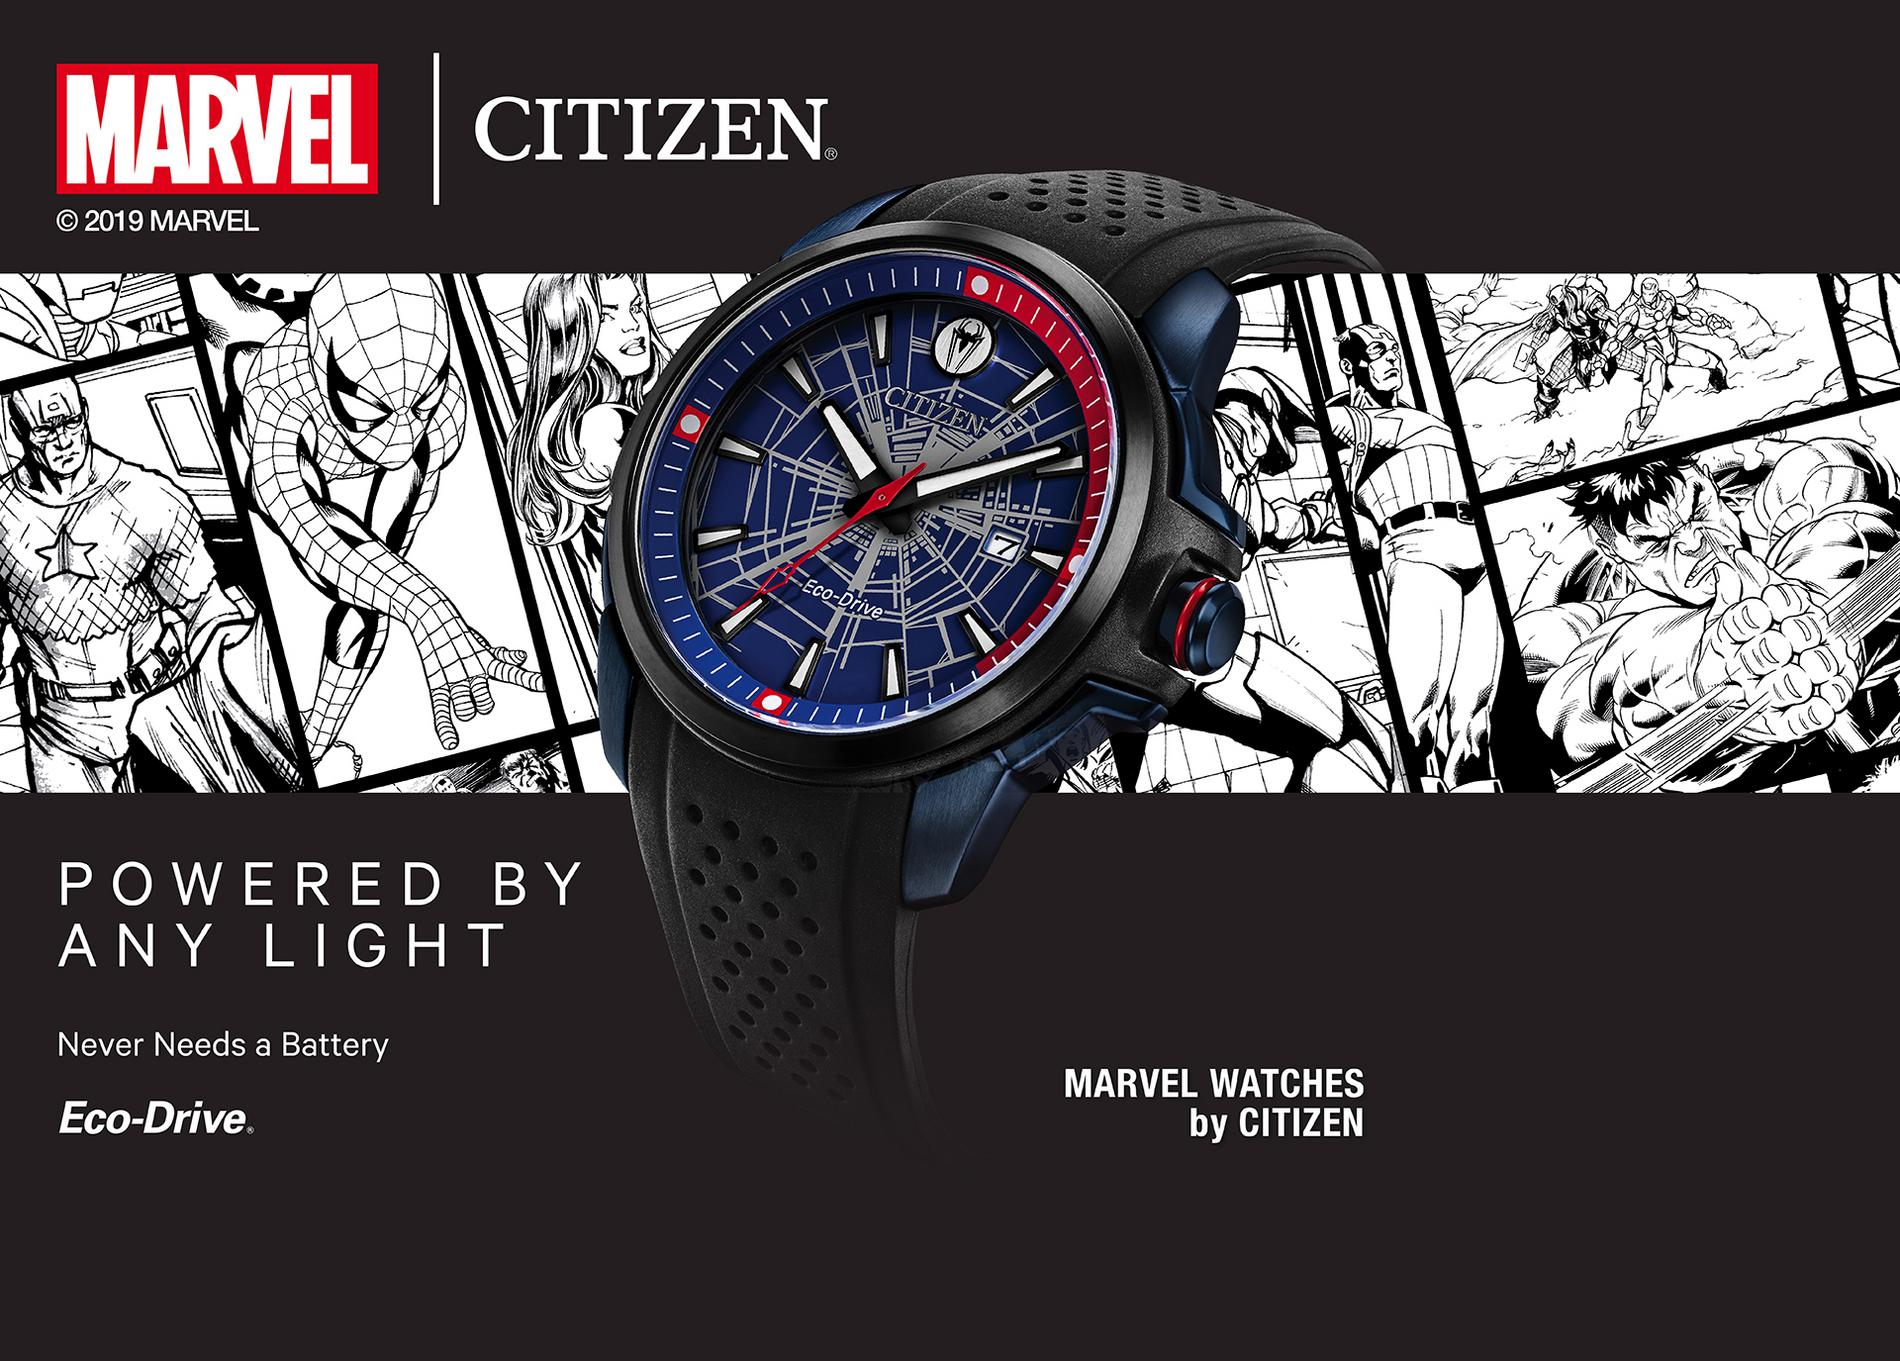 Marvel Watches by Citizen